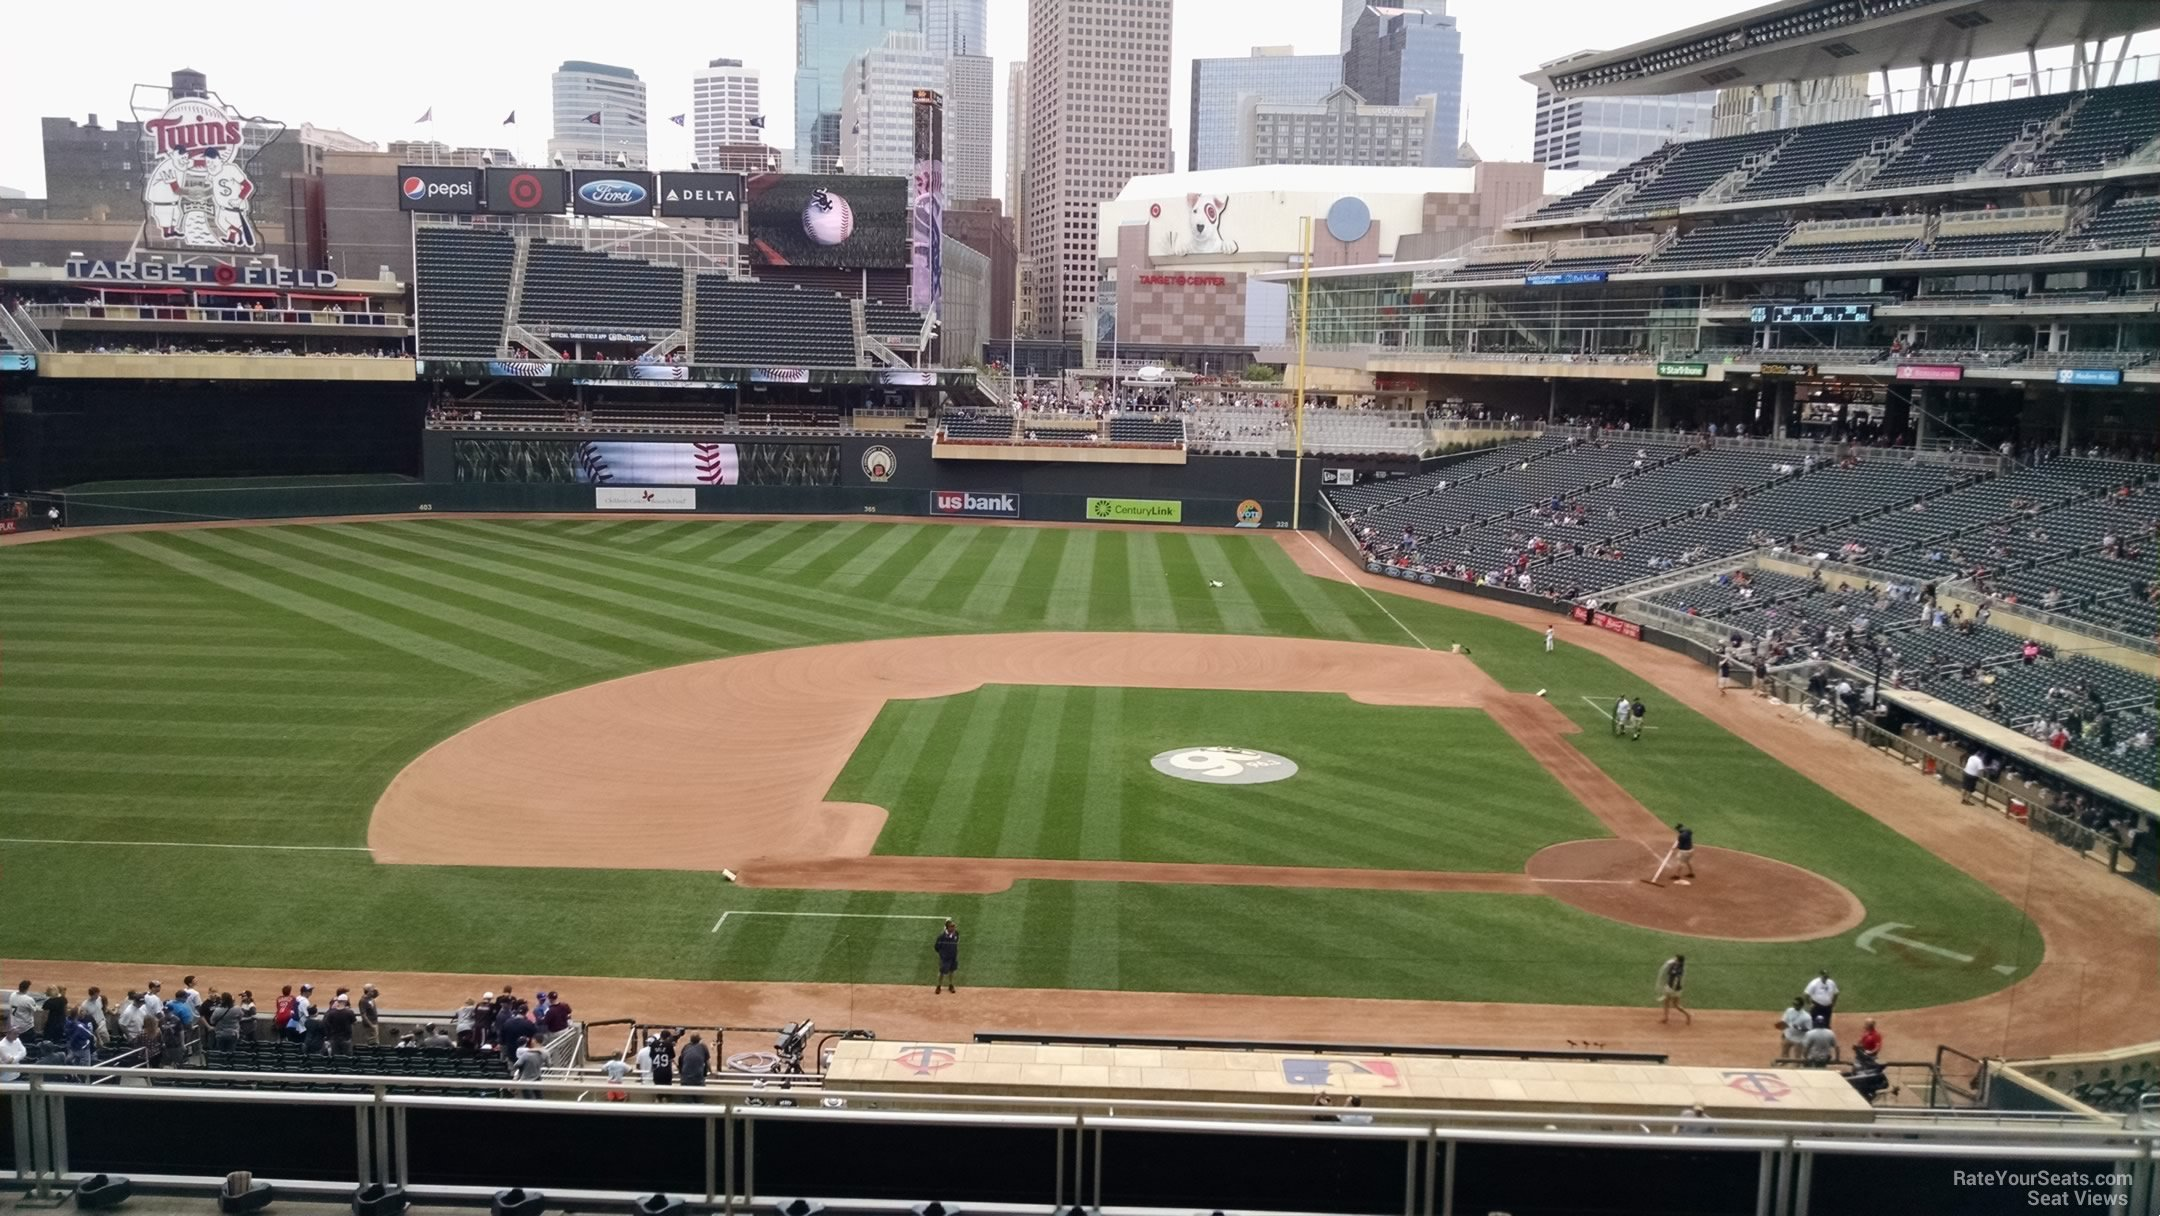 Target Field Section N - RateYourSeats.com